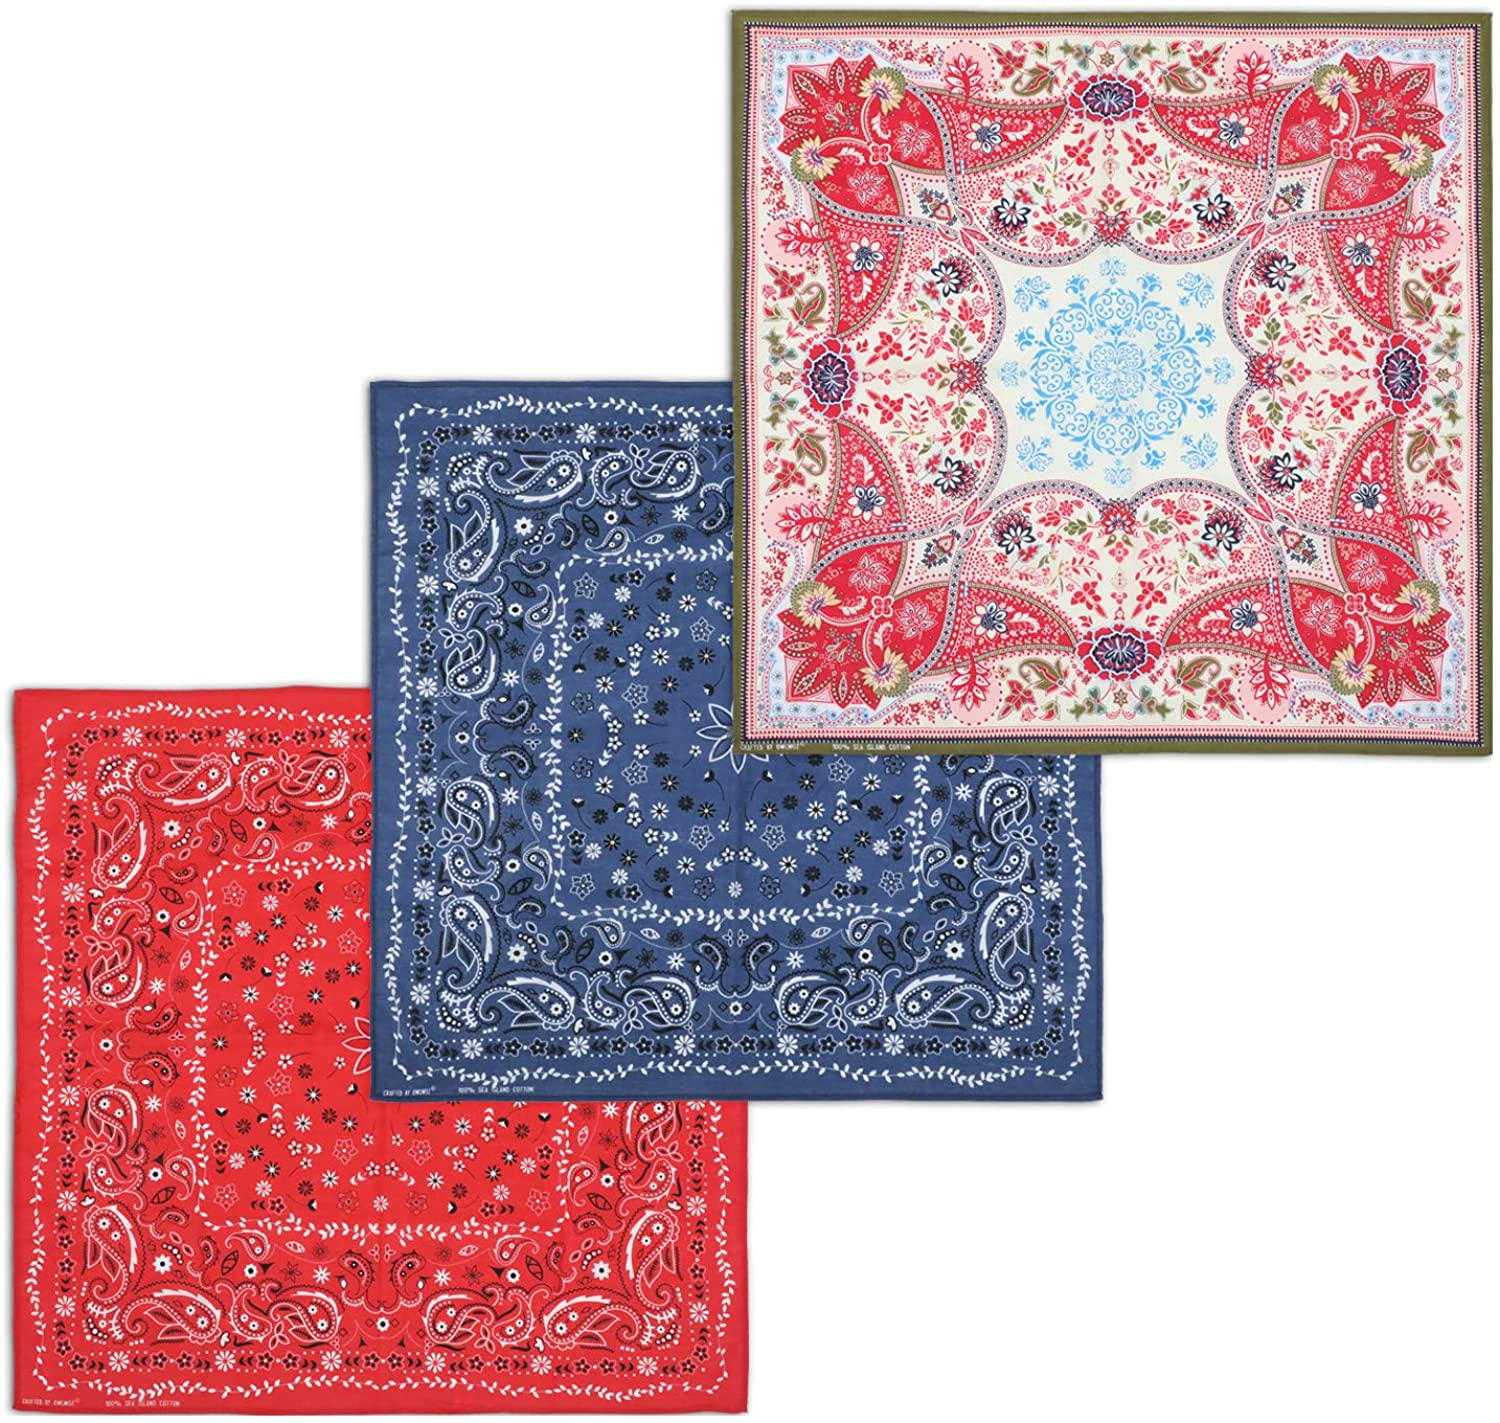 3 Pack Bandanas 100% Combed Cotton Colored Handkerchiefs for Women and Men, Multi-functional Cool Headbands (005): Clothing